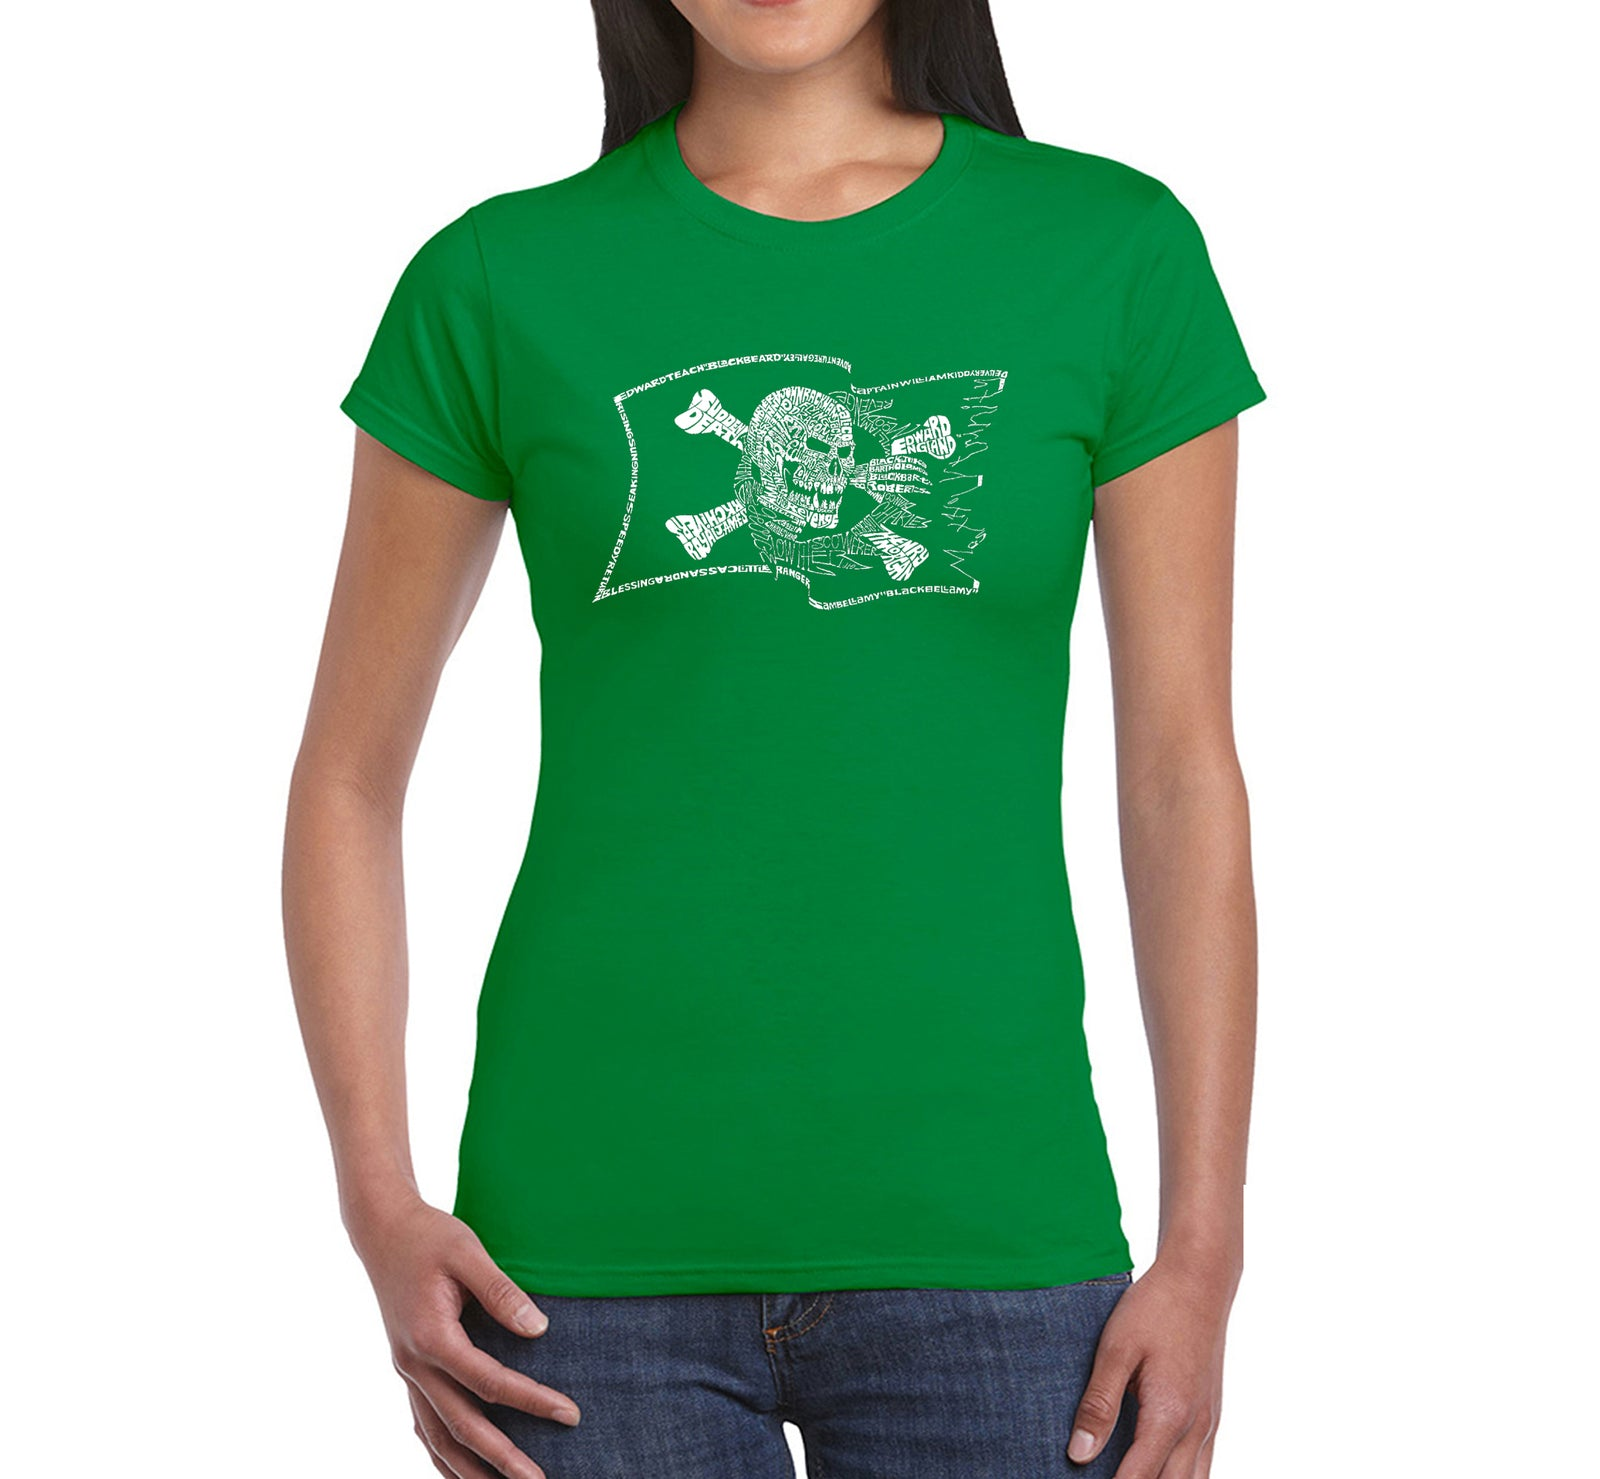 Women's T-Shirt - FAMOUS PIRATE CAPTAINS AND SHIPS